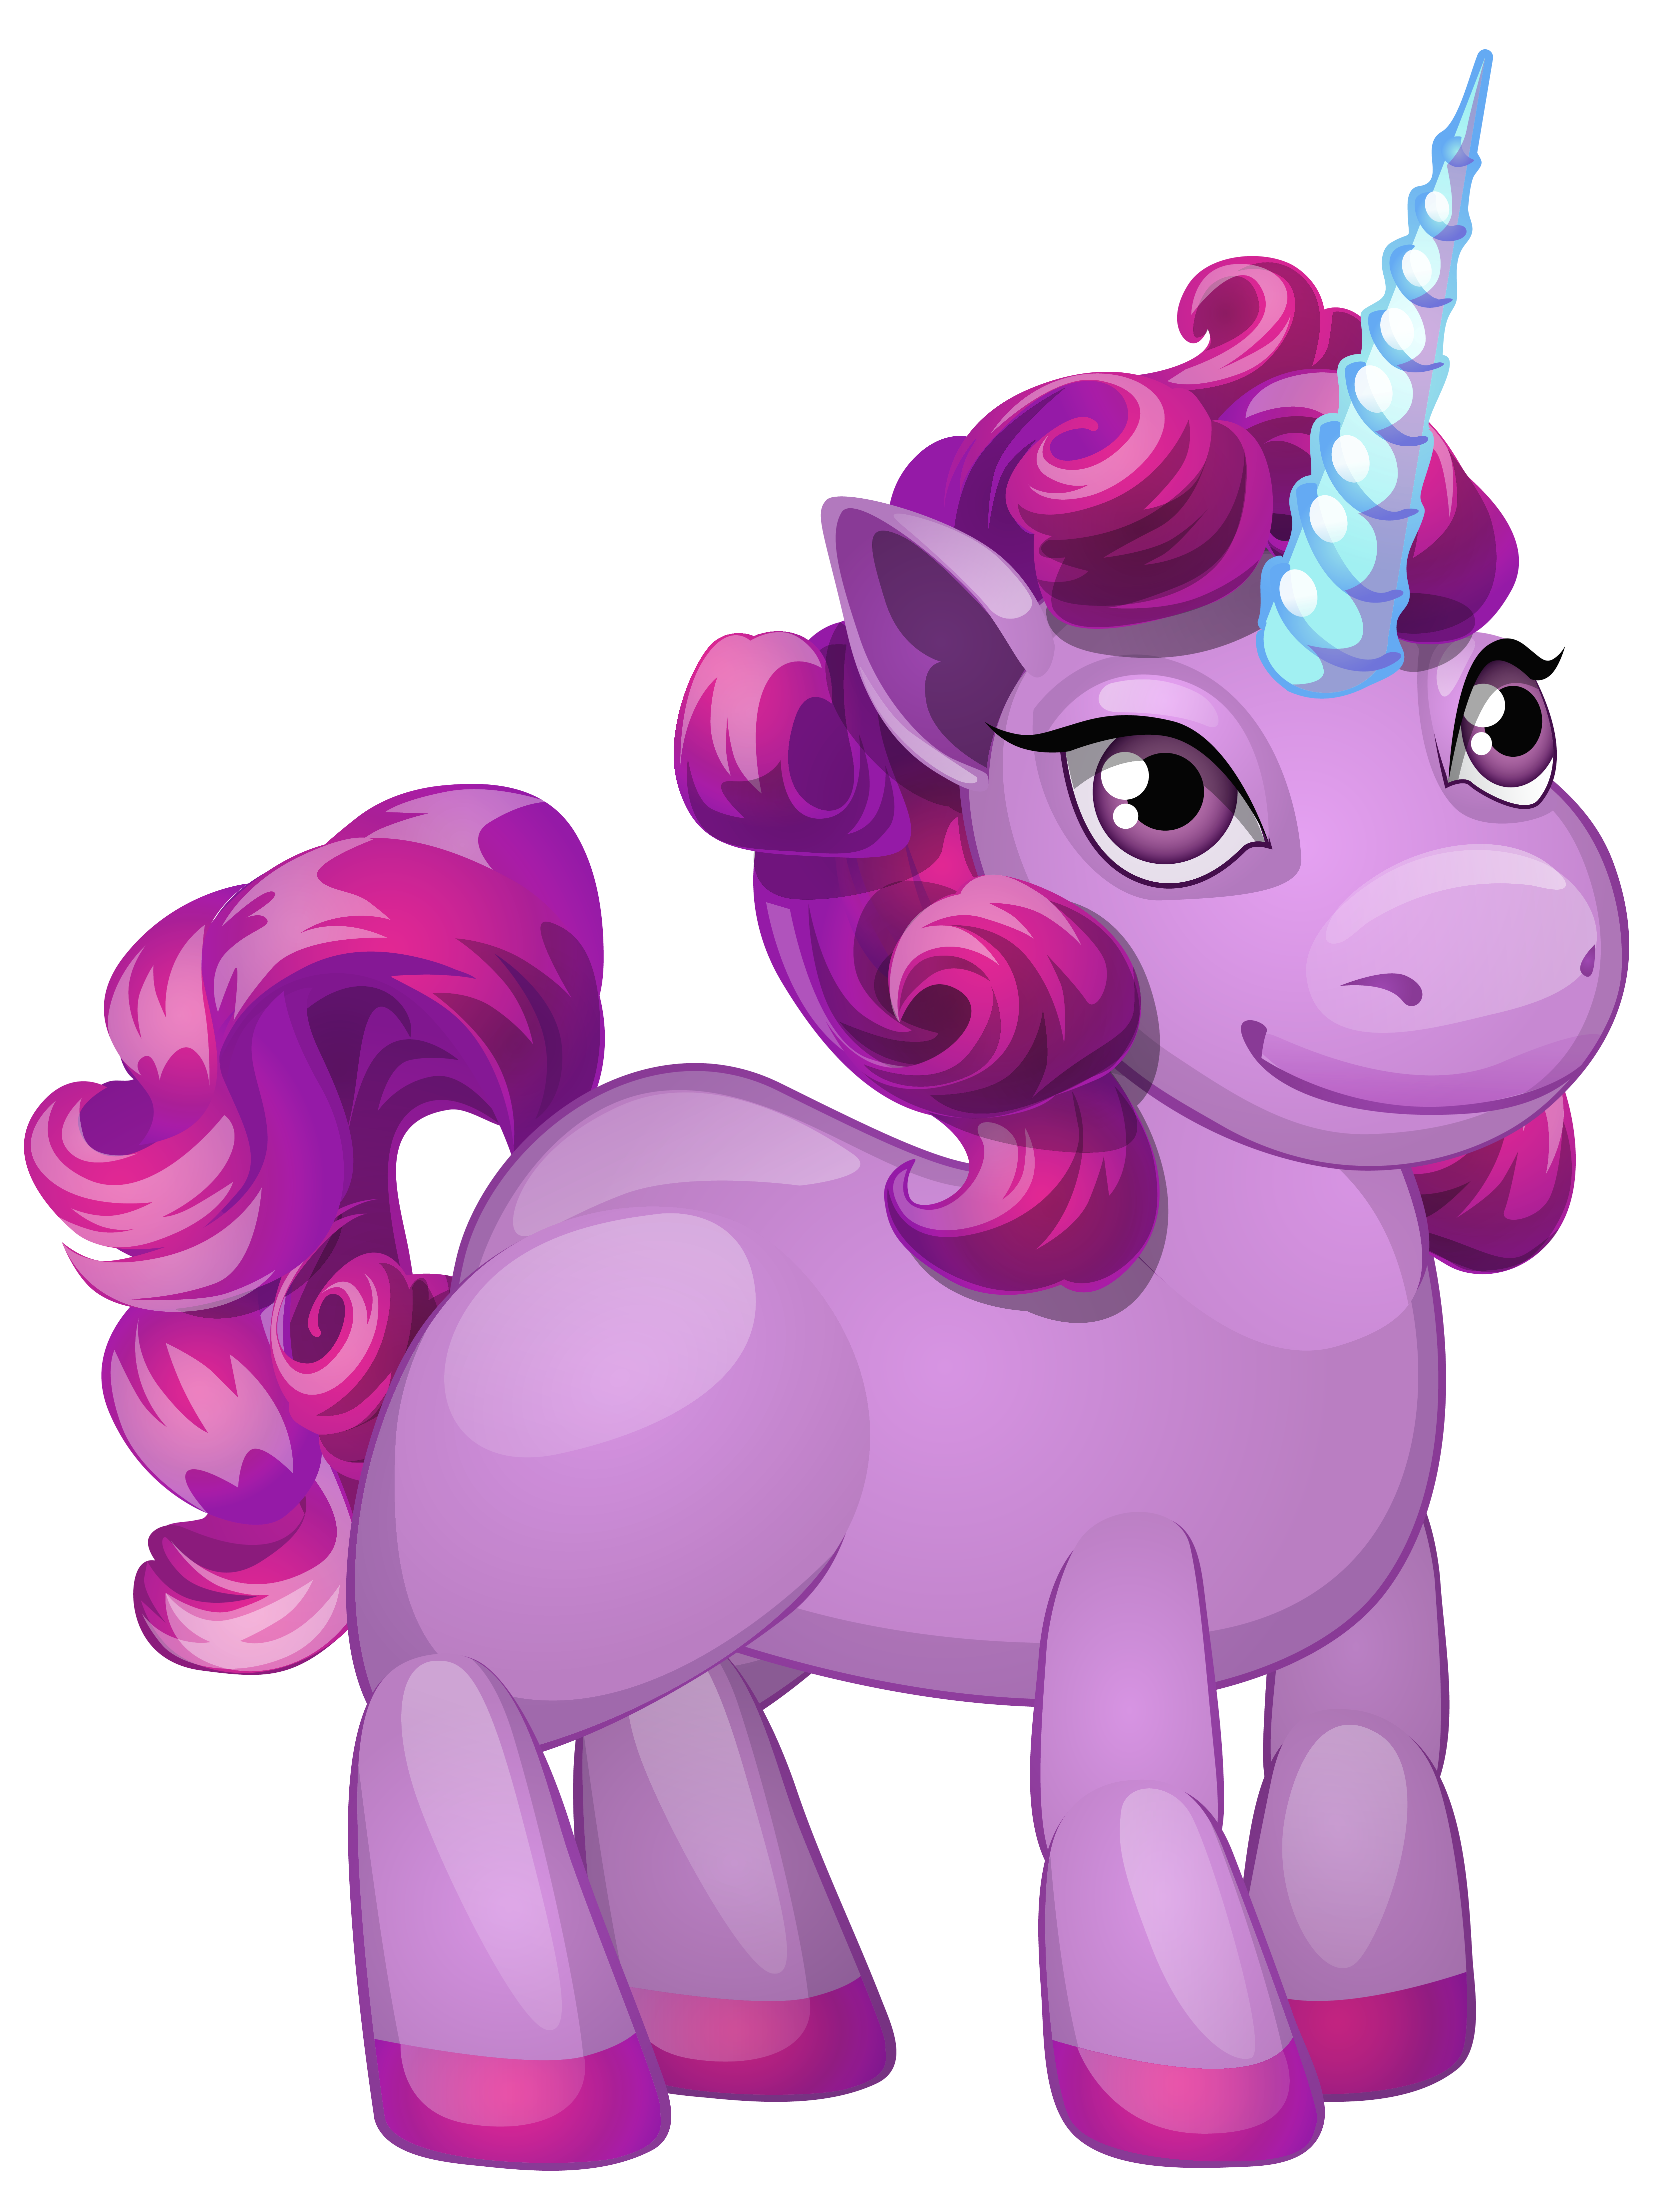 Clipart unicorn pony. Cute purple png clip